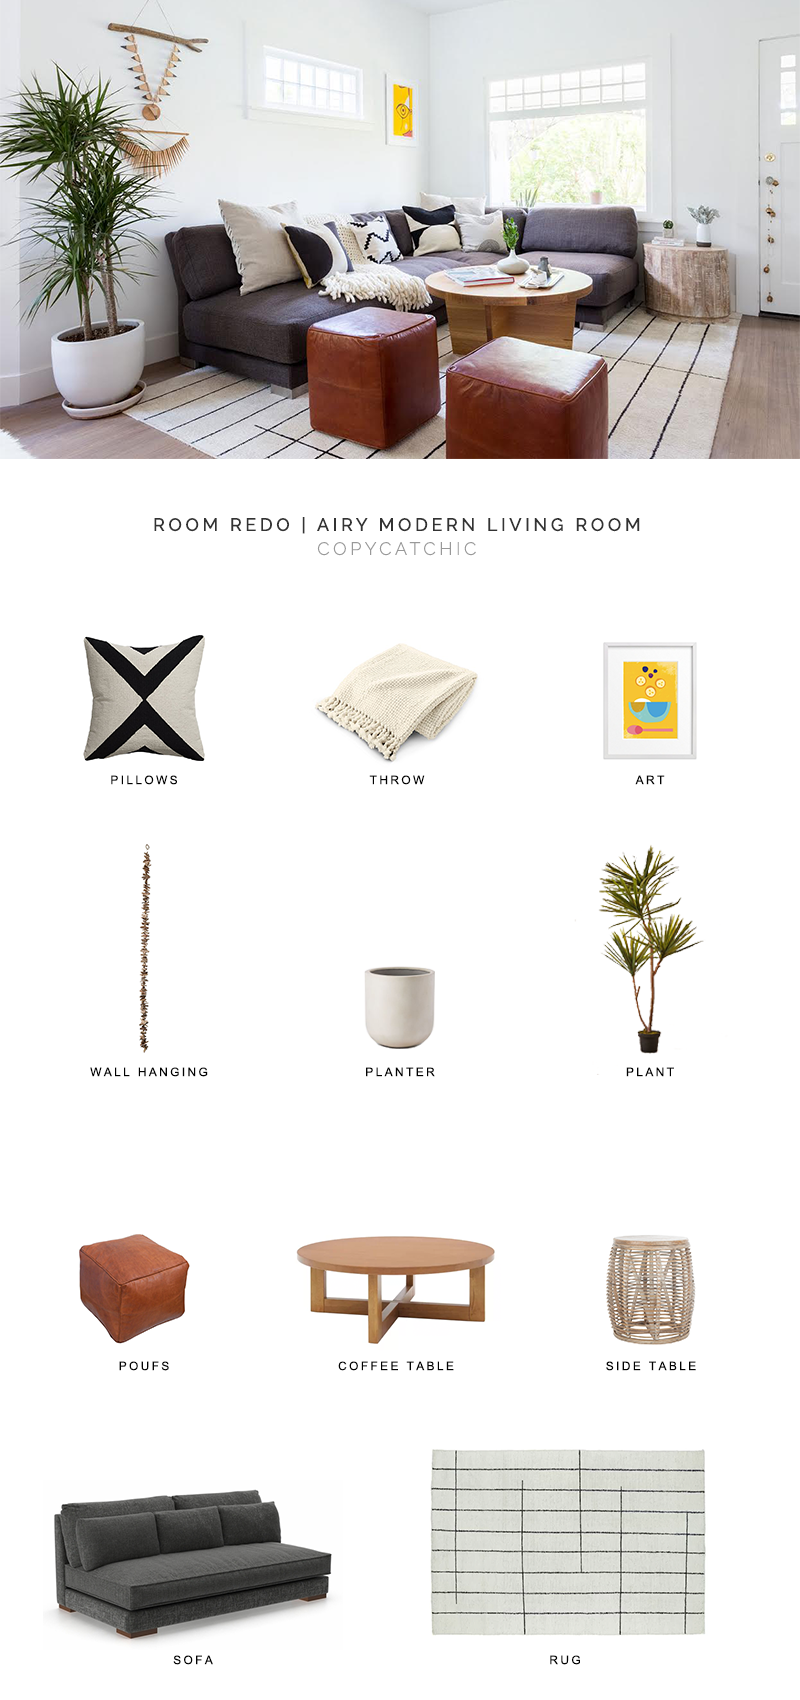 modern living room look for less, copycatchic luxe living for less, budget home decor and design, daily finds, home trends, sales, budget travel and room redos